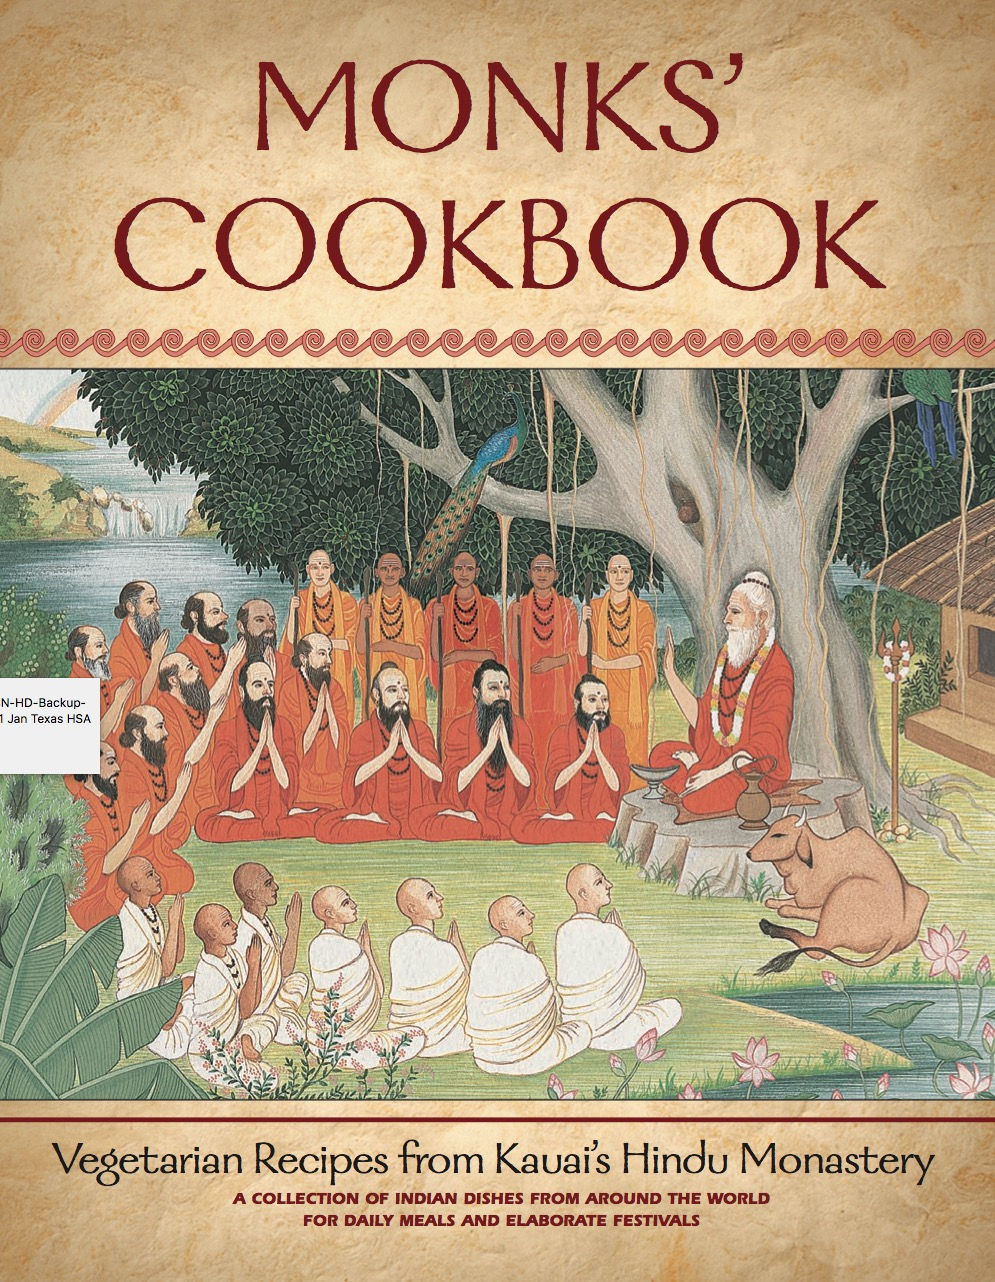 Monks' Cookbook (third edition)